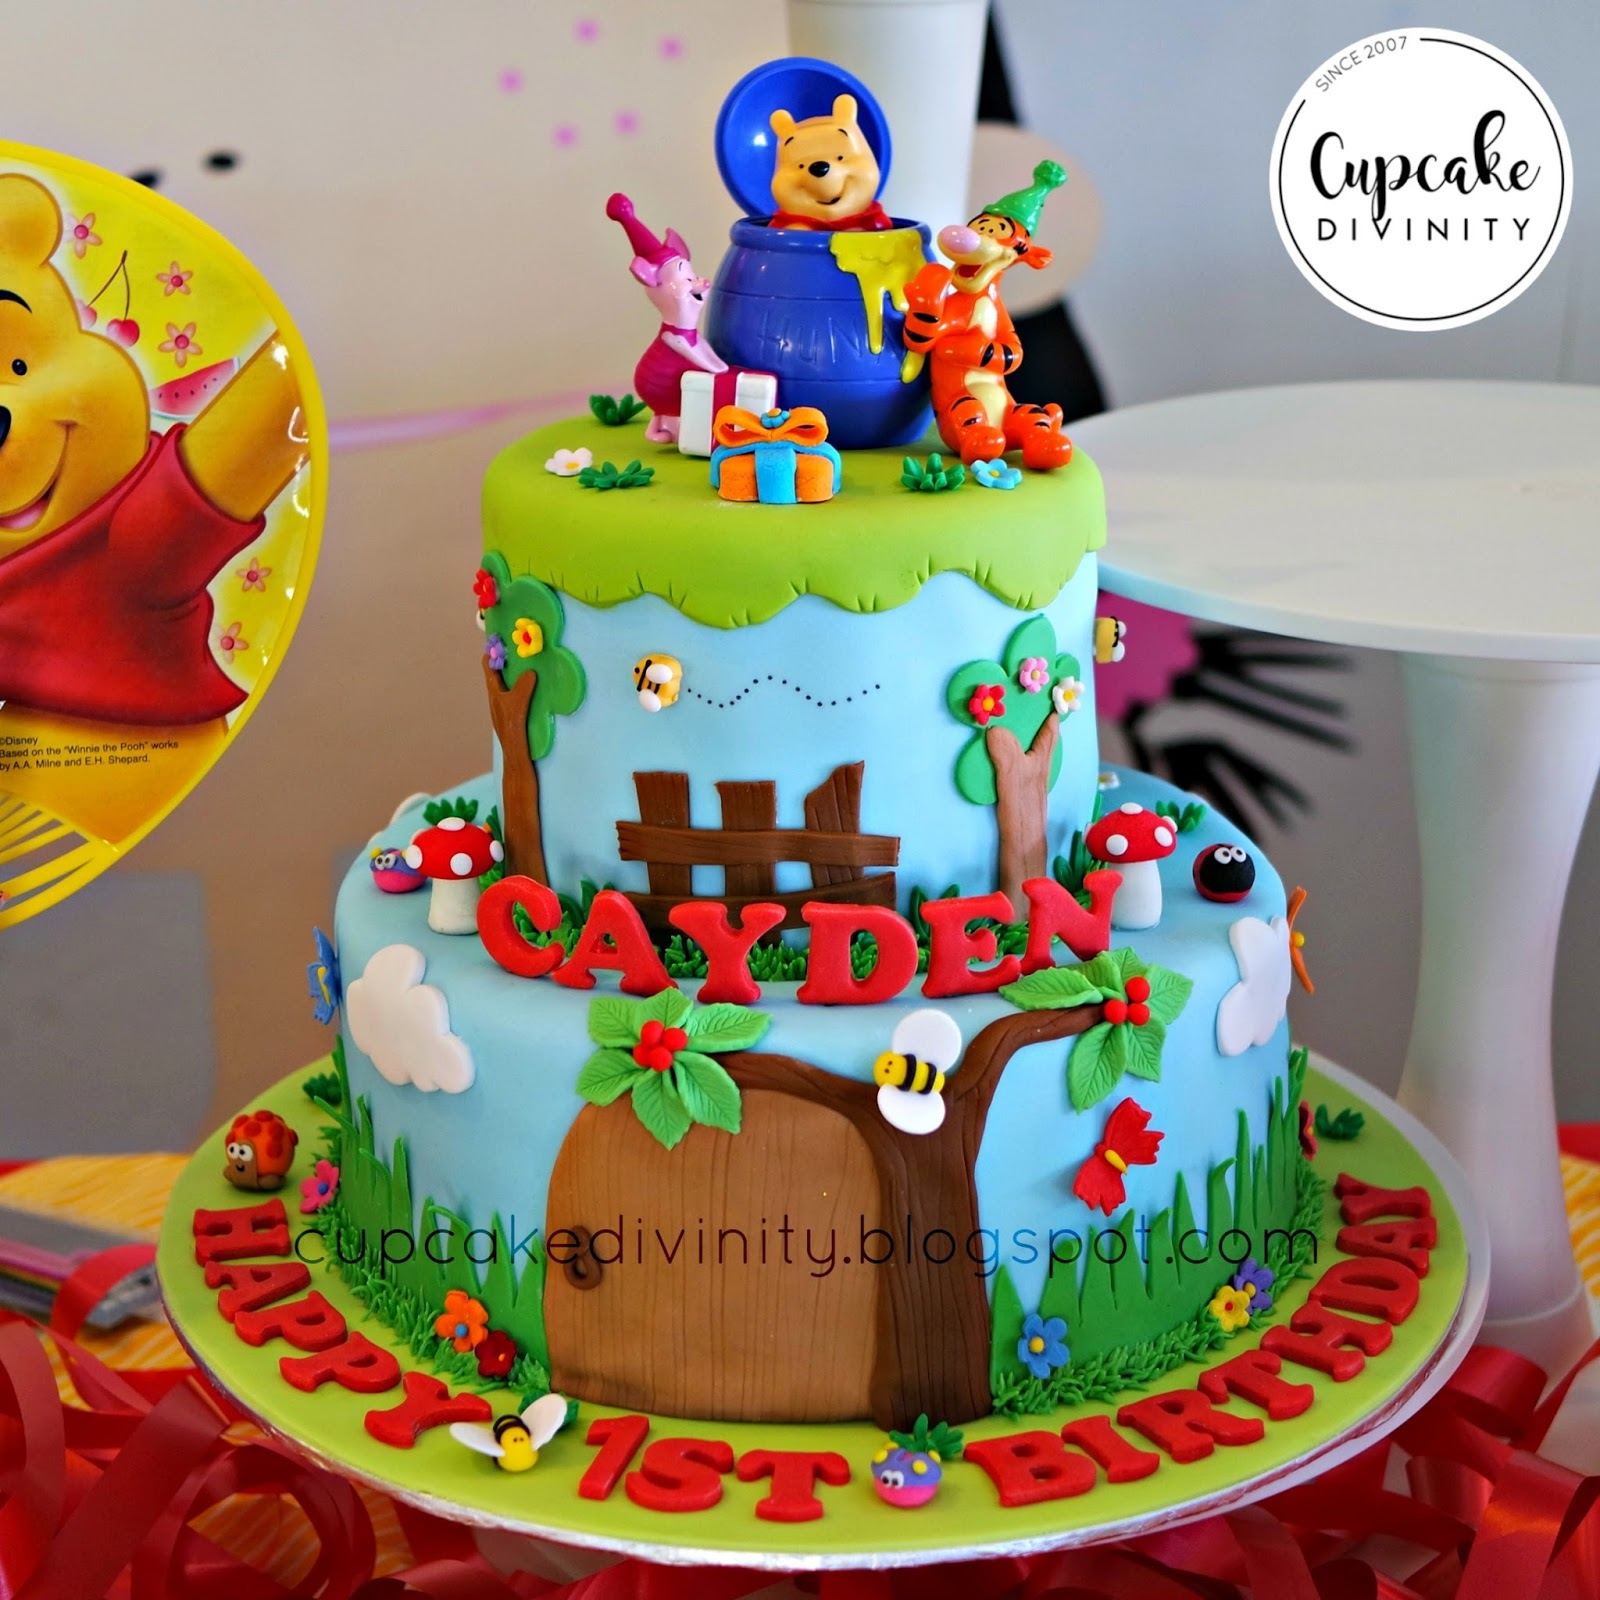 pooh cake Winnie the pooh at dairy queen #17745 16 cakes offered at this location disney baby baby pooh 1st birthday photocake® frame cake disney baby baby pooh 1st birthday photocake® image strips cake disney baby baby pooh baby shower photocake® image strips cake disney baby winnie the pooh 1st.